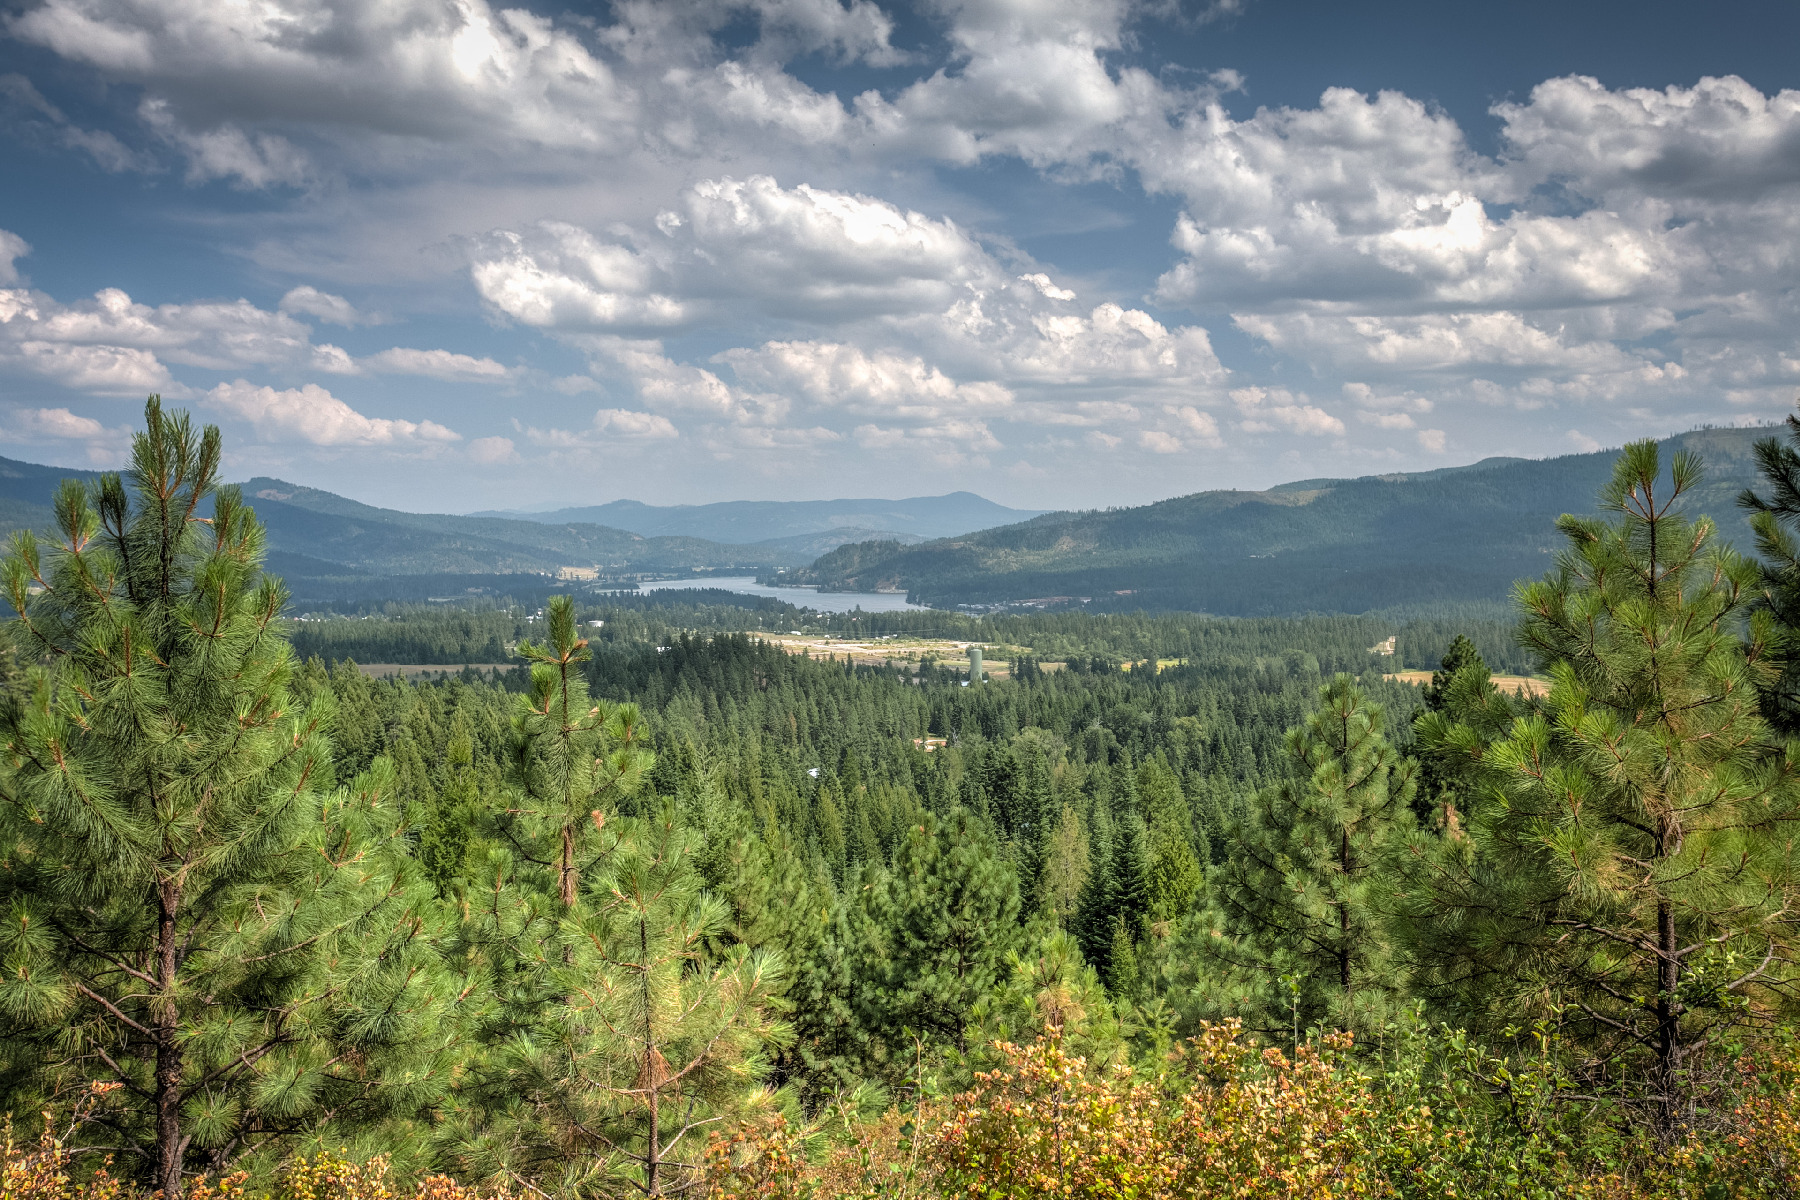 Land for Sale at RIDGEVIEW ESTATE 3907 US Highway 2, Priest River, Idaho, 83856 United States